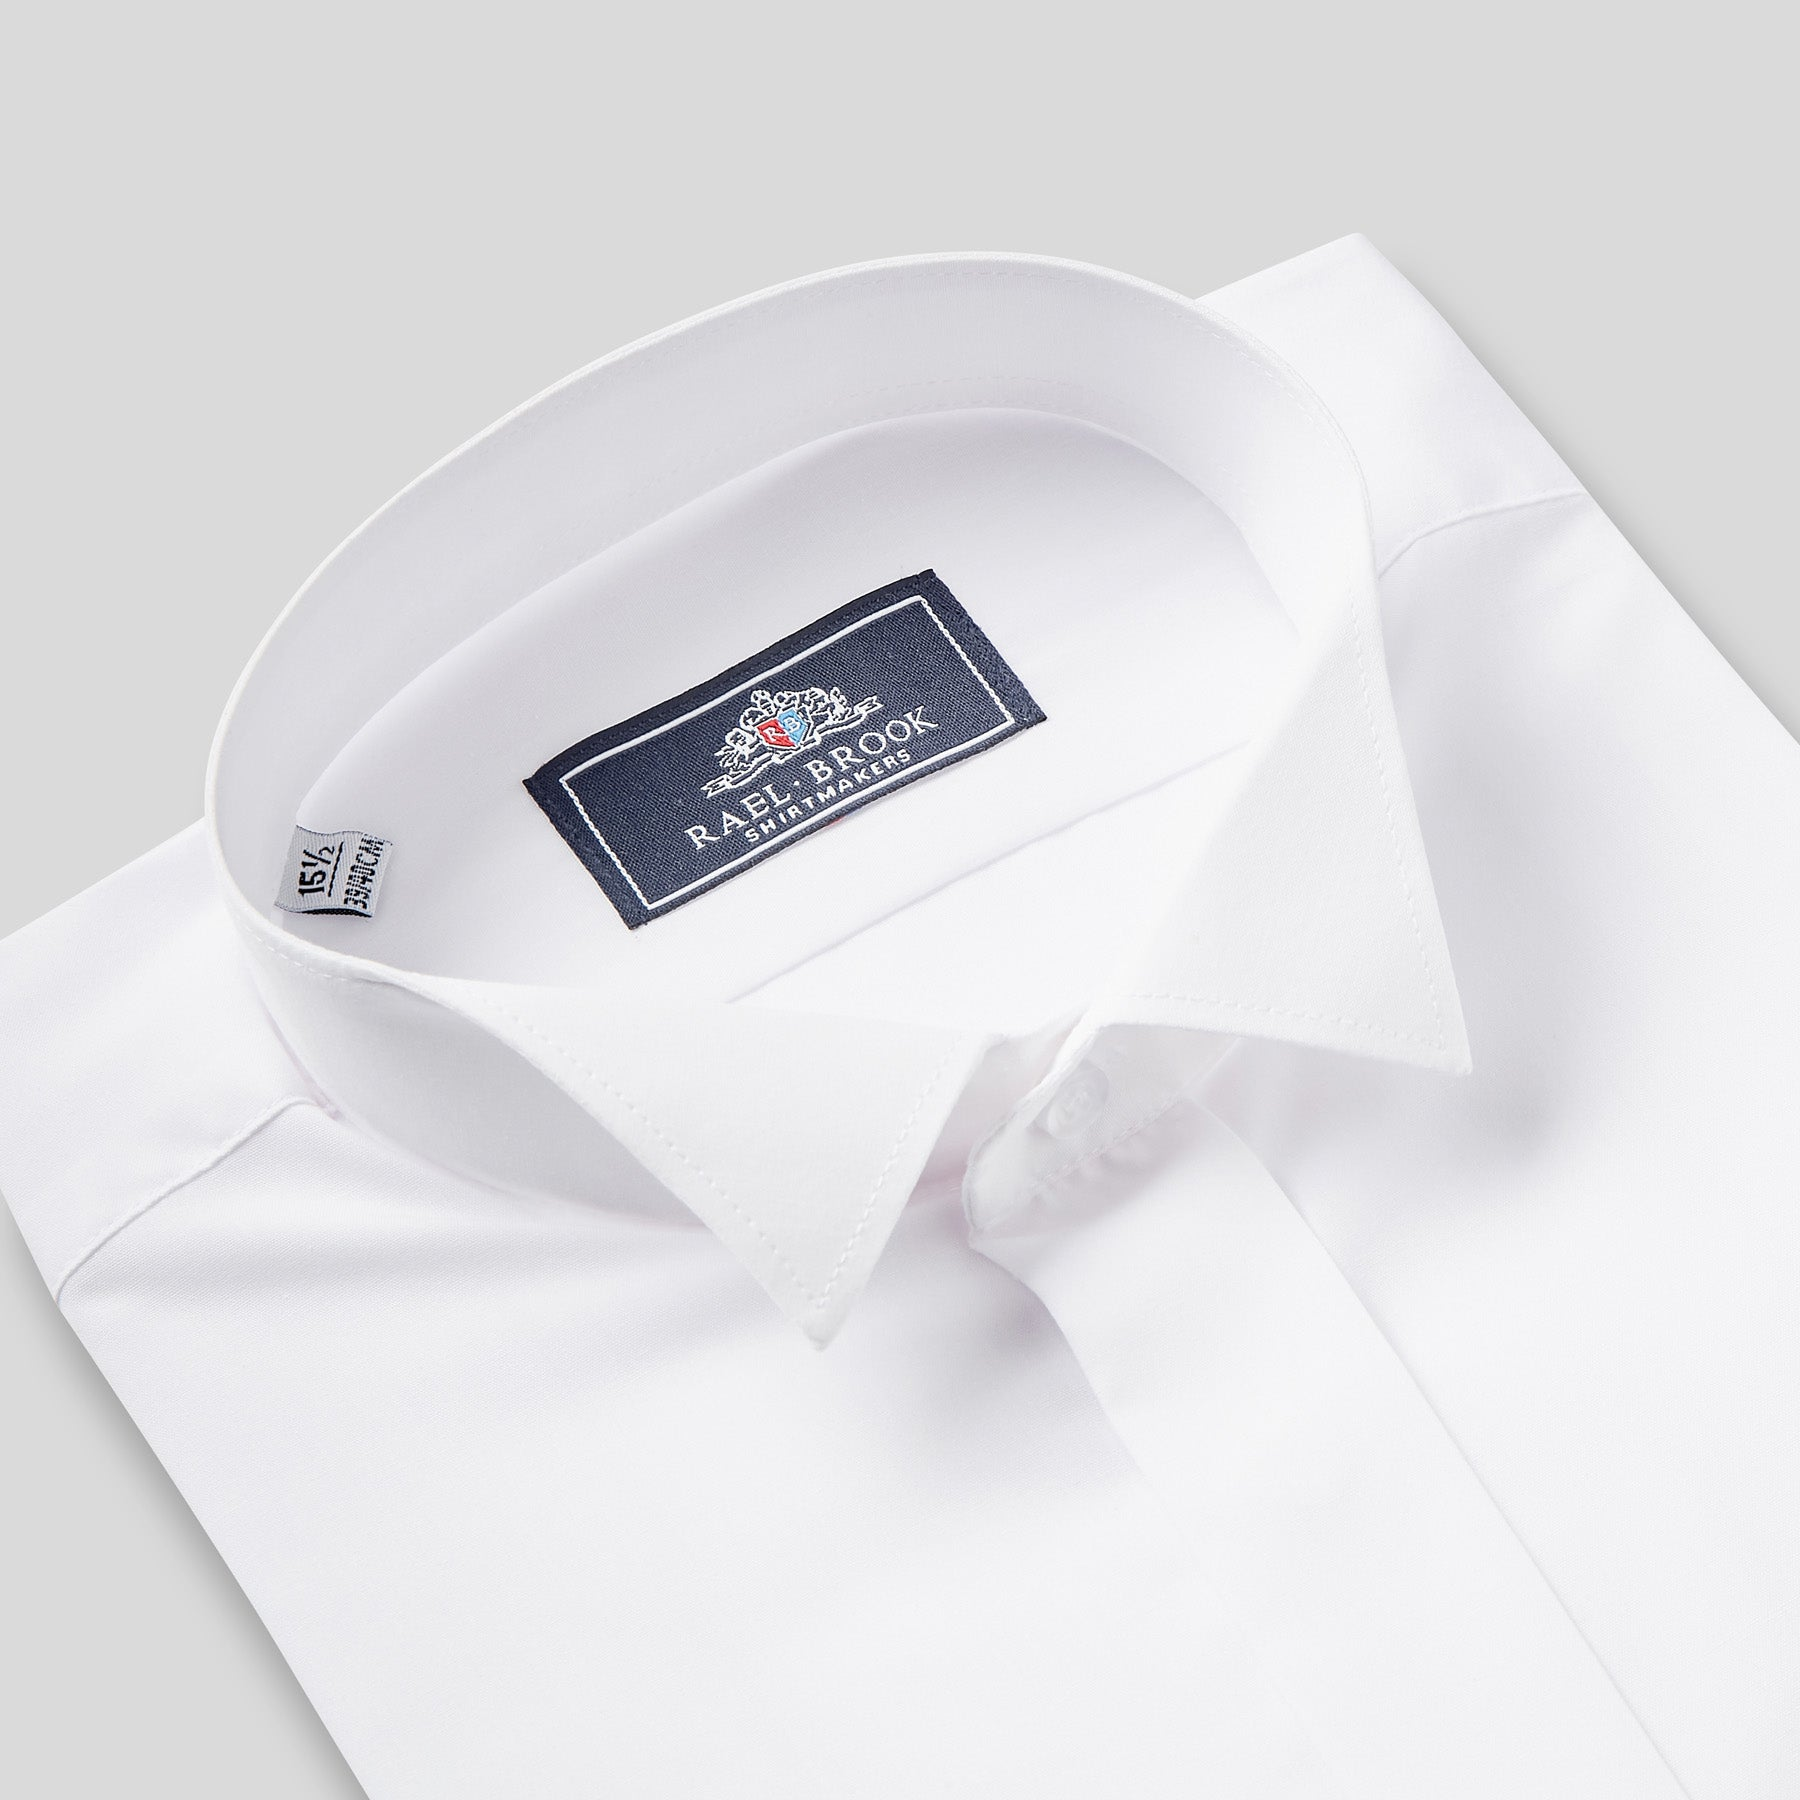 Rael Brook Classic Fit White Extra Long Sleeve Wing Collar Dress Shirt Collar